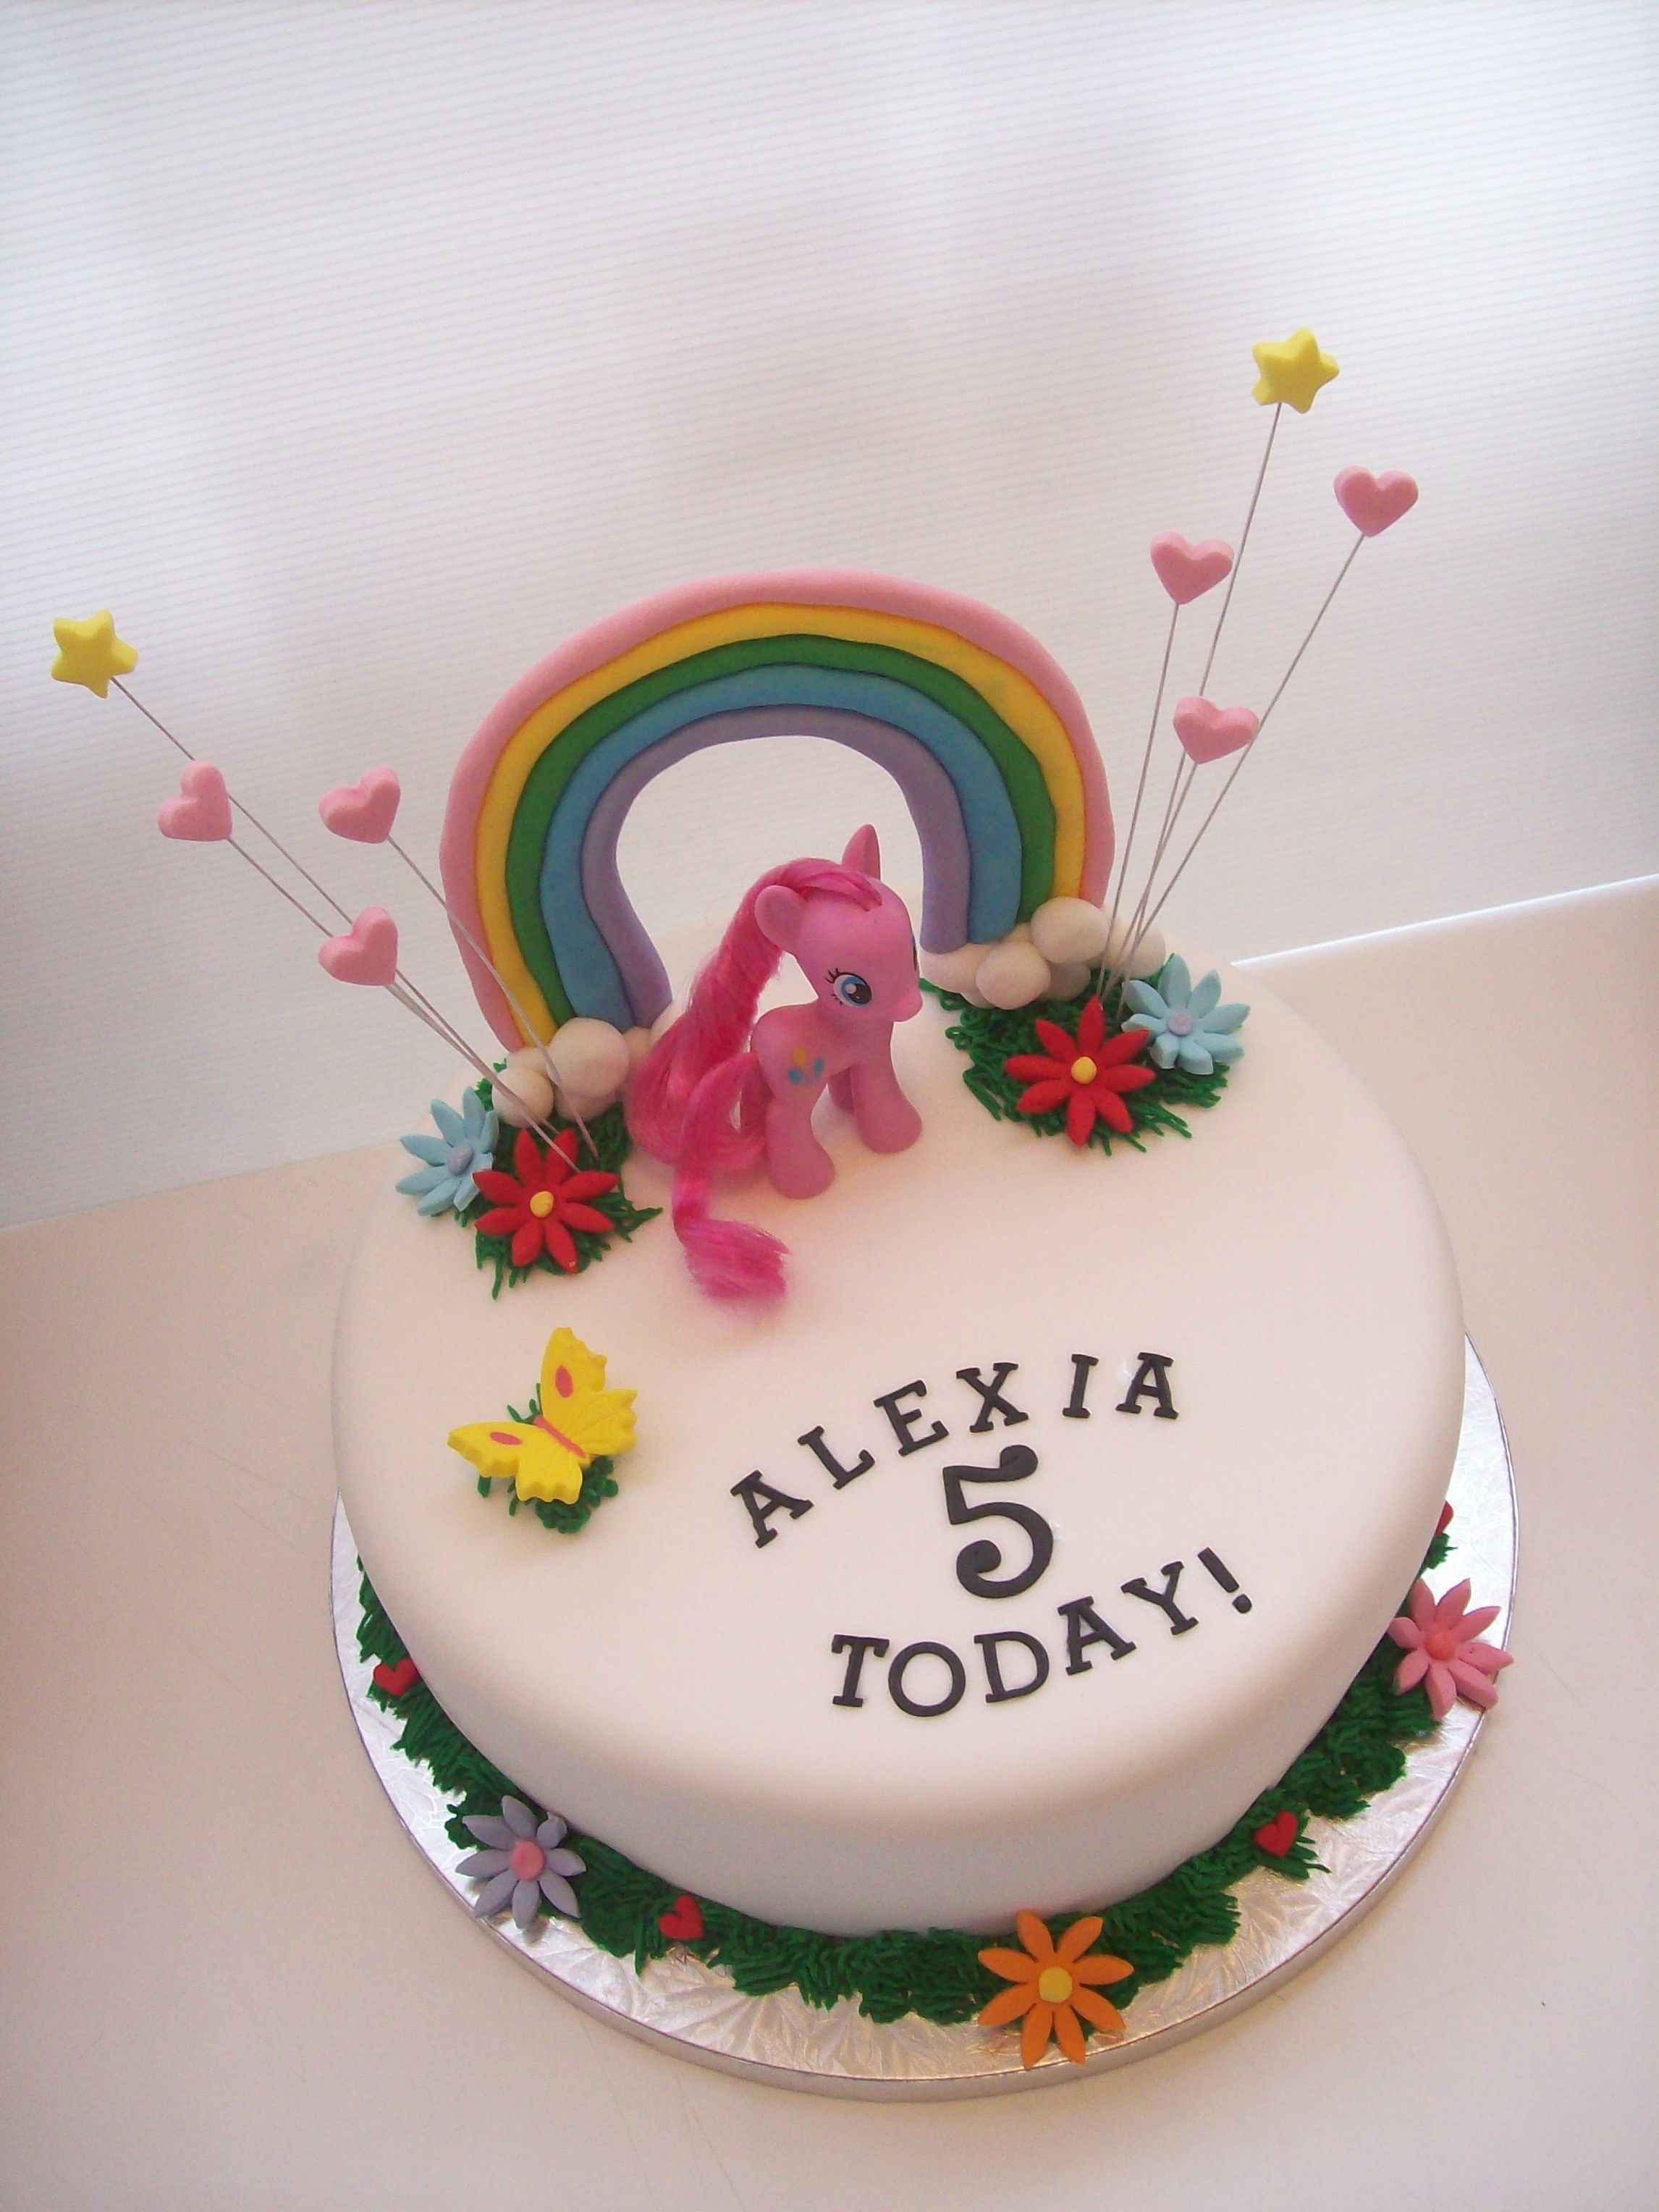 My Little Pony Cake Auckland 199 includes free delivery within